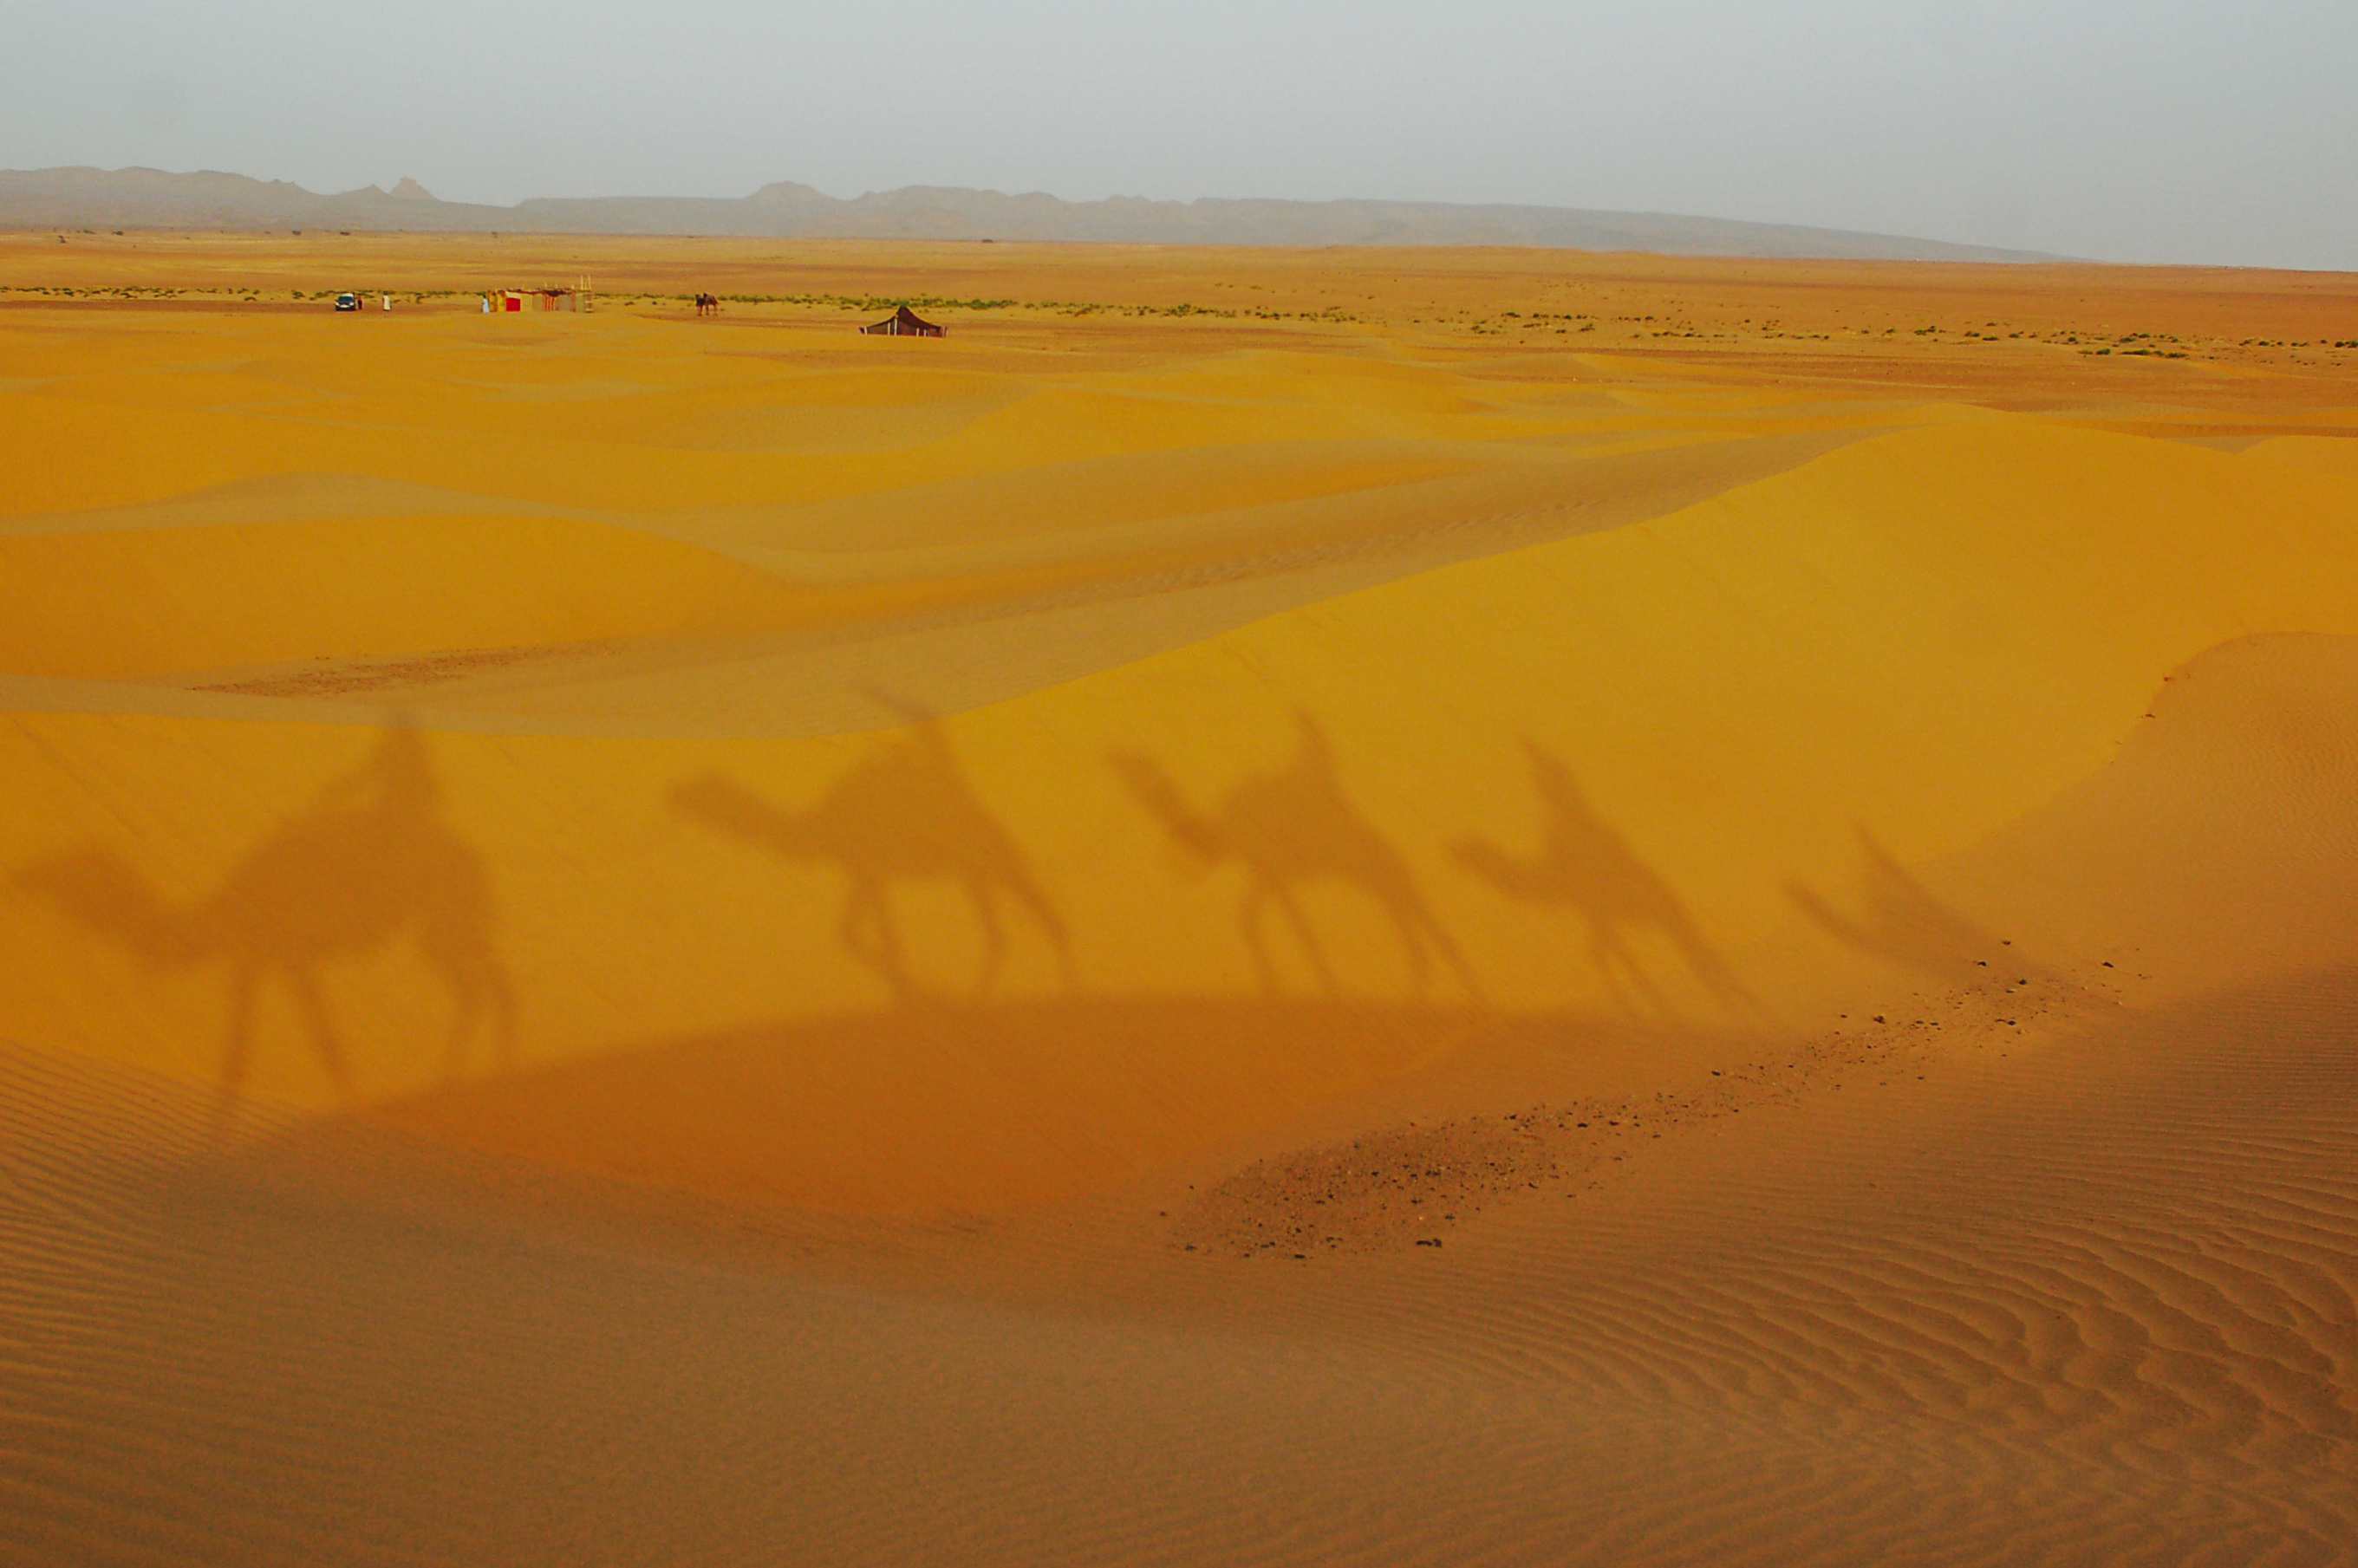 Shadows of people riding camels on the sand in the desert